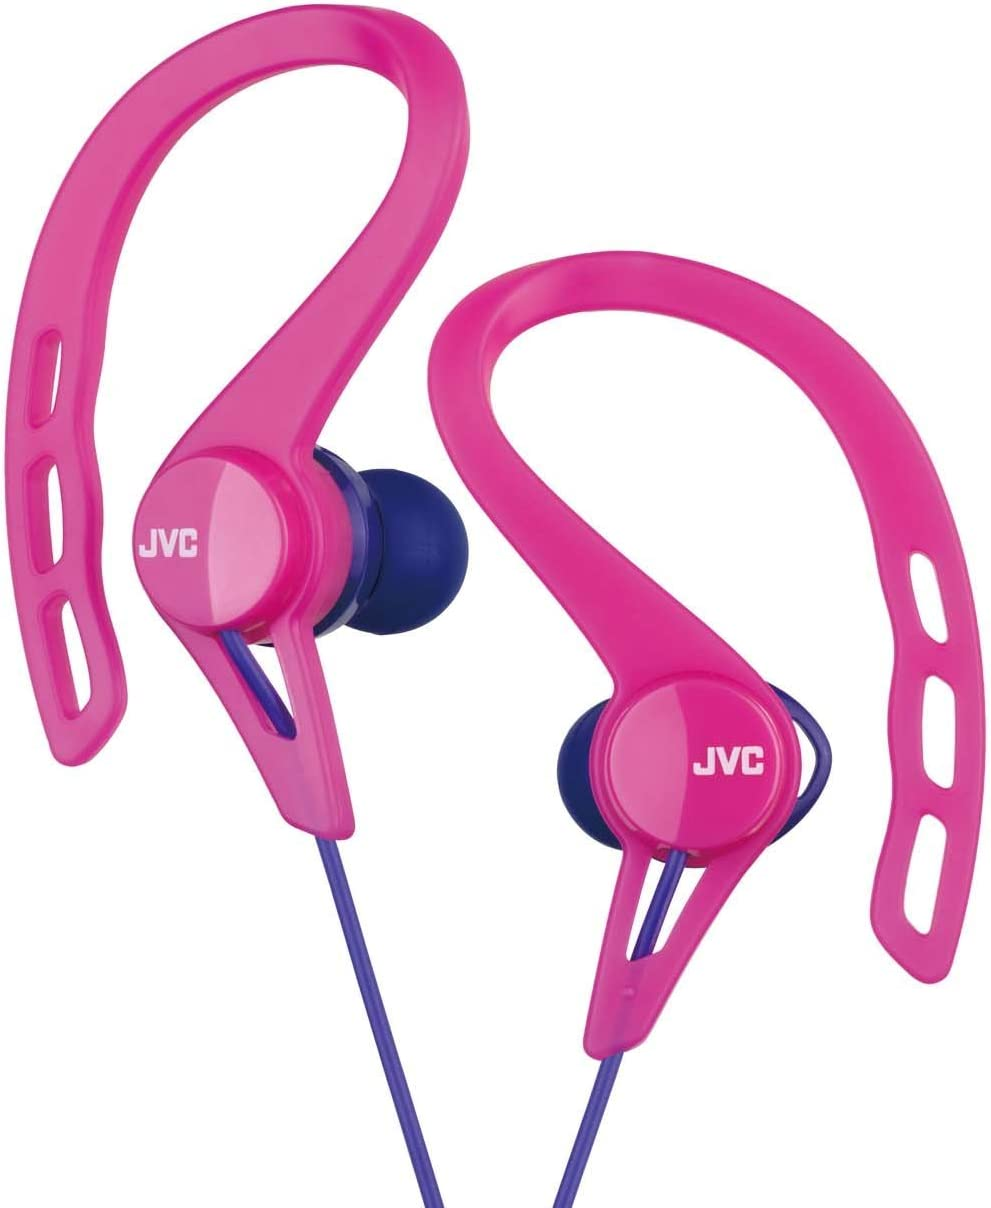 JVC HA-EXC25-P canal type earphone drip-proof specification Pink sports